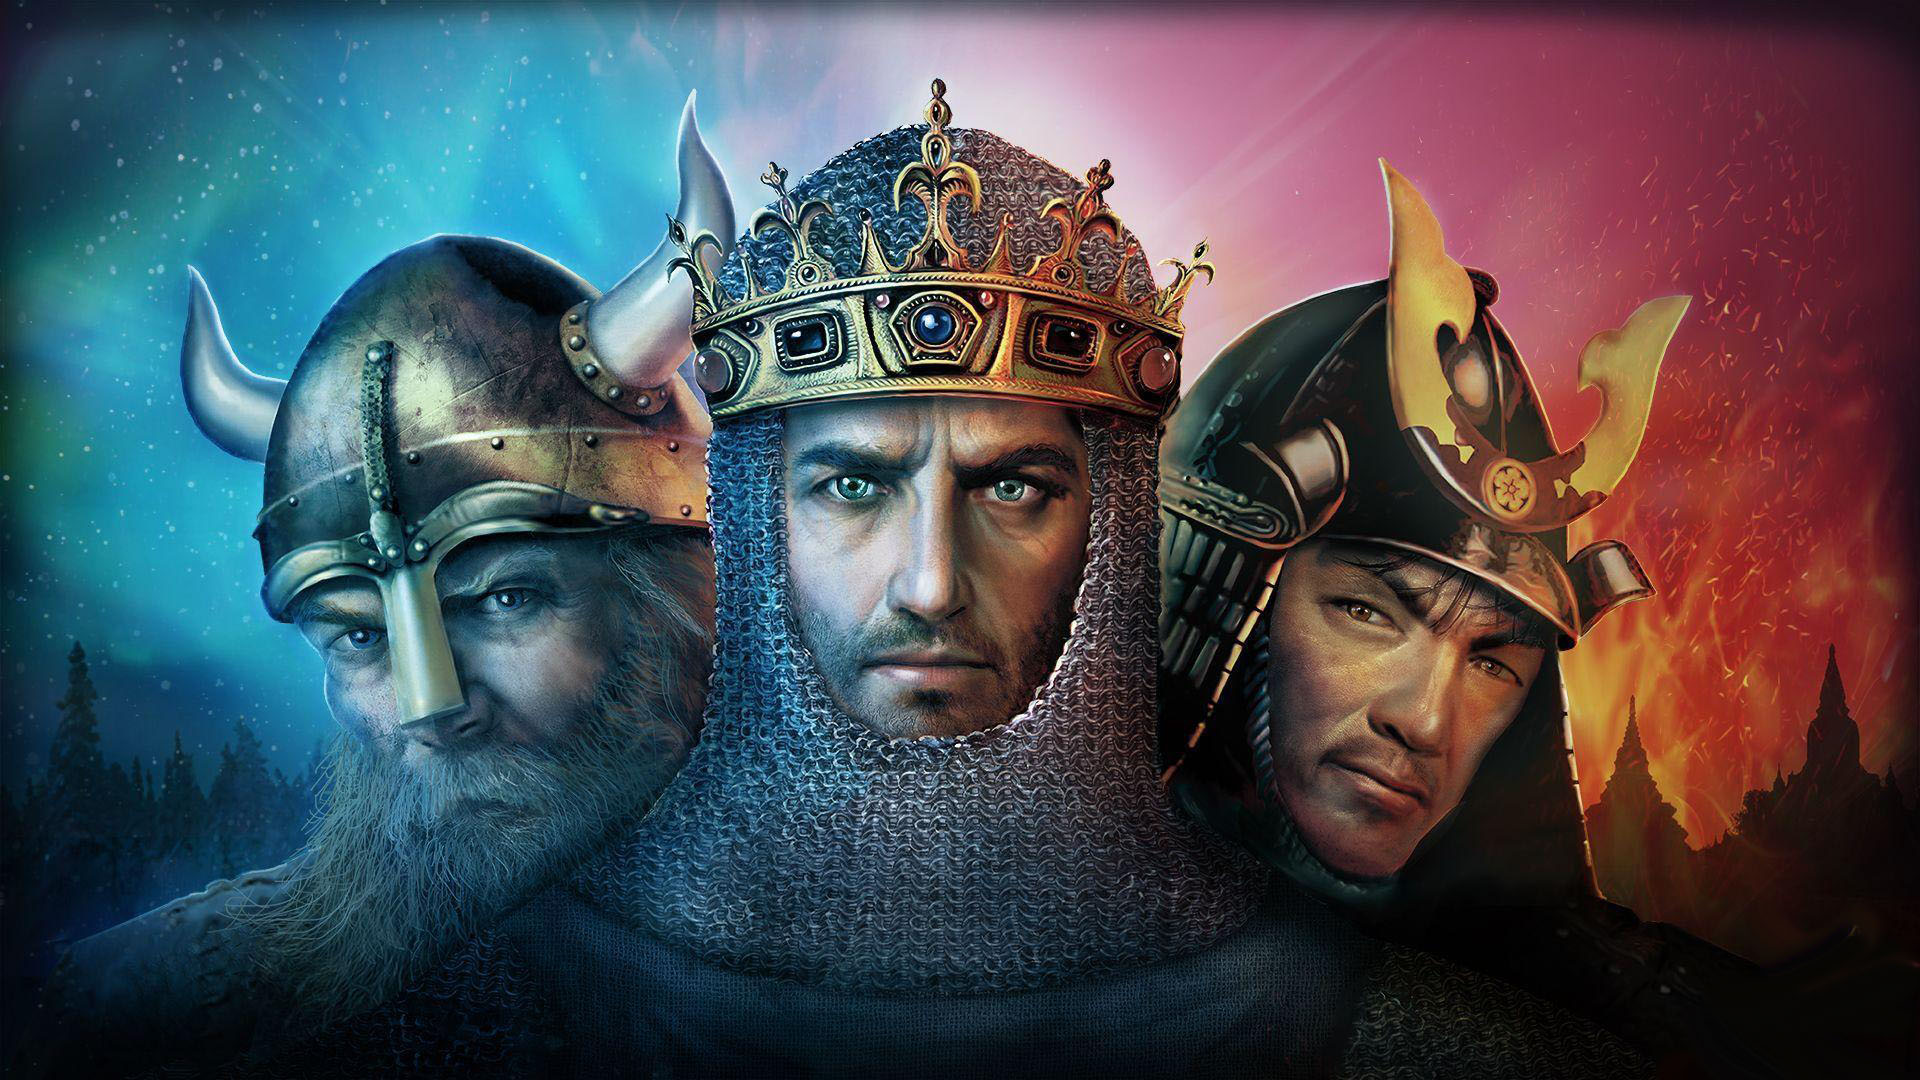 Age of Empires II: The Age of Kings AI Update